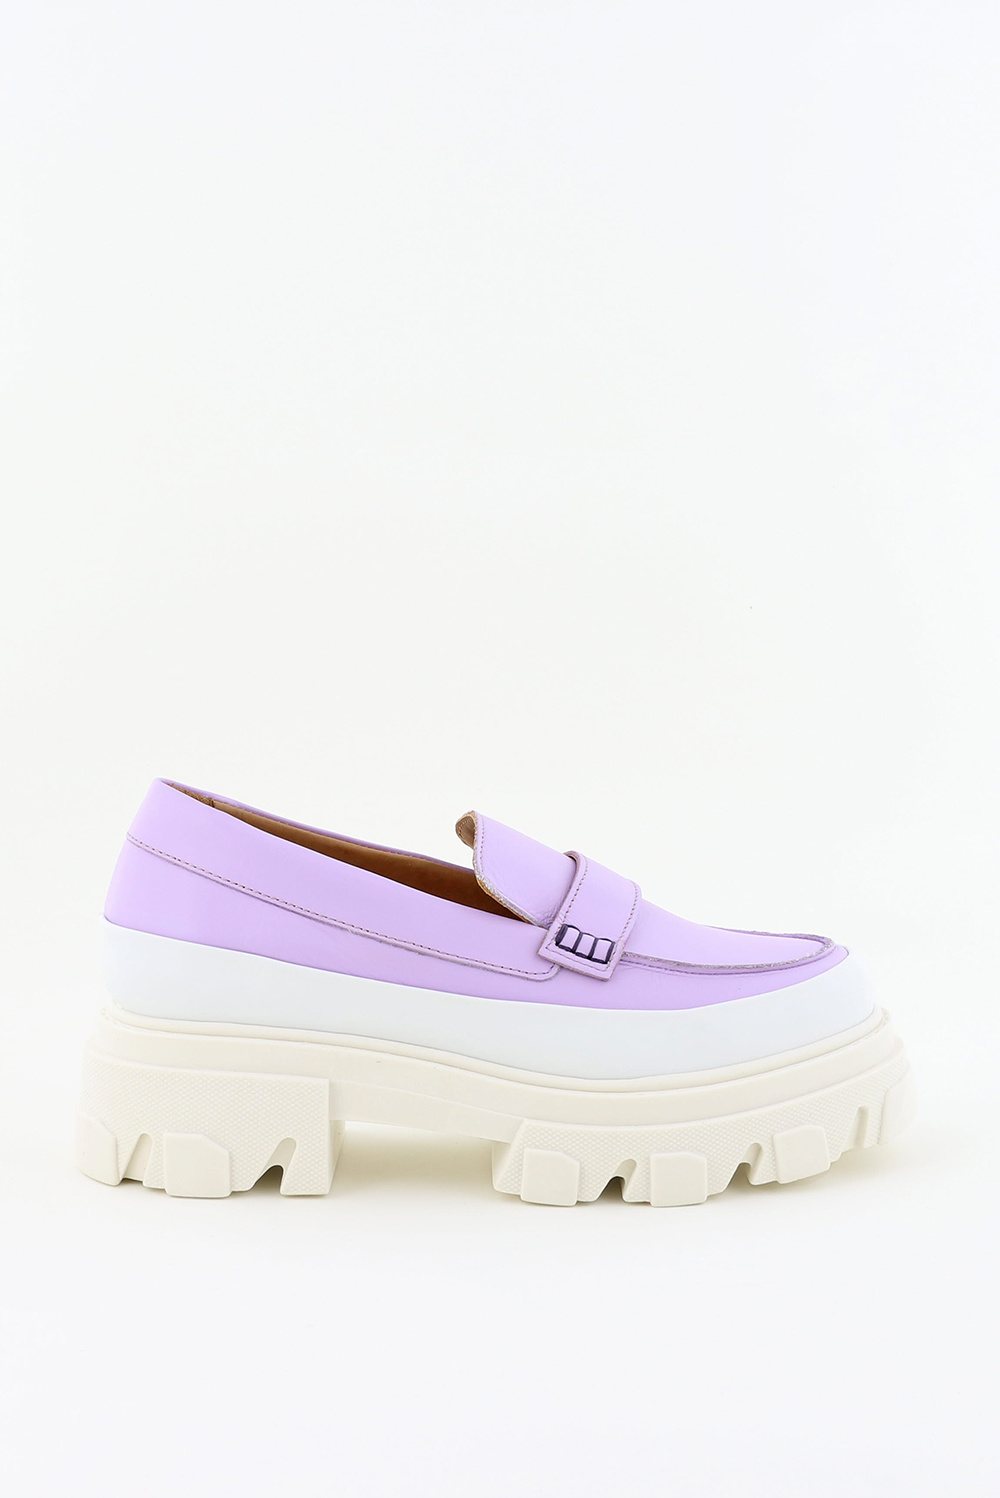 Ganni loafers S1492 paars